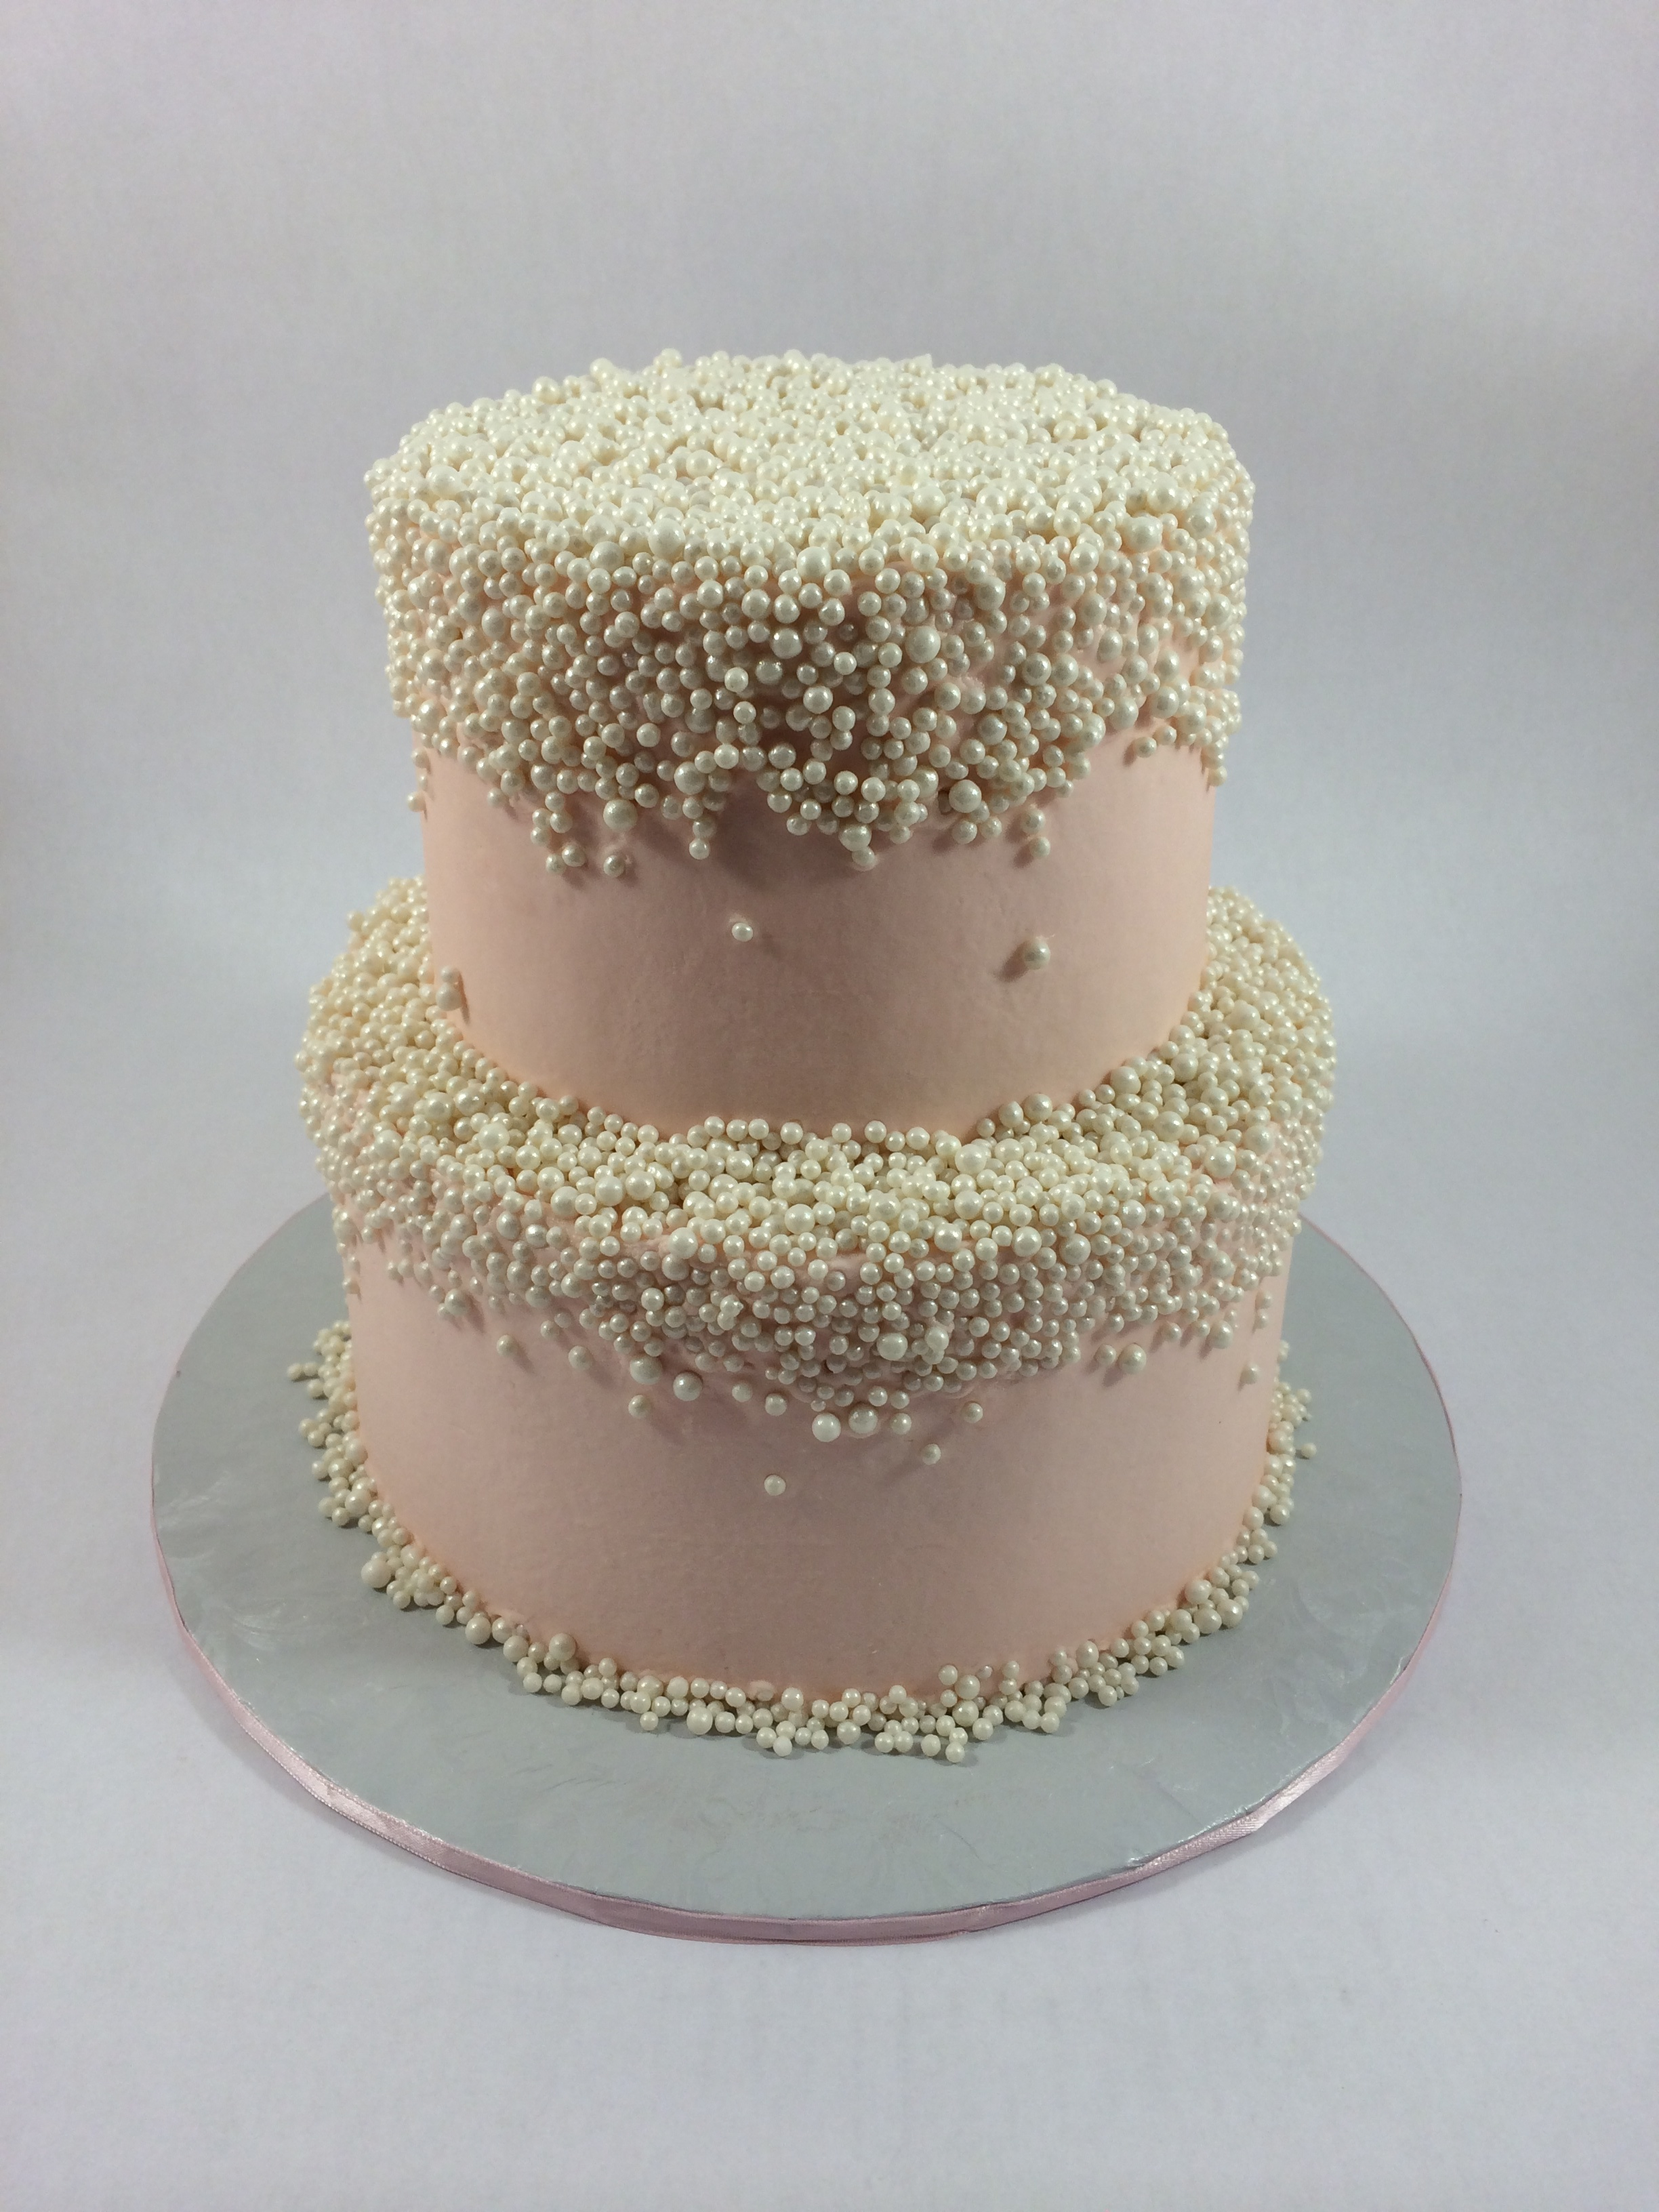 Cake with zillions of sugar pearls.JPG